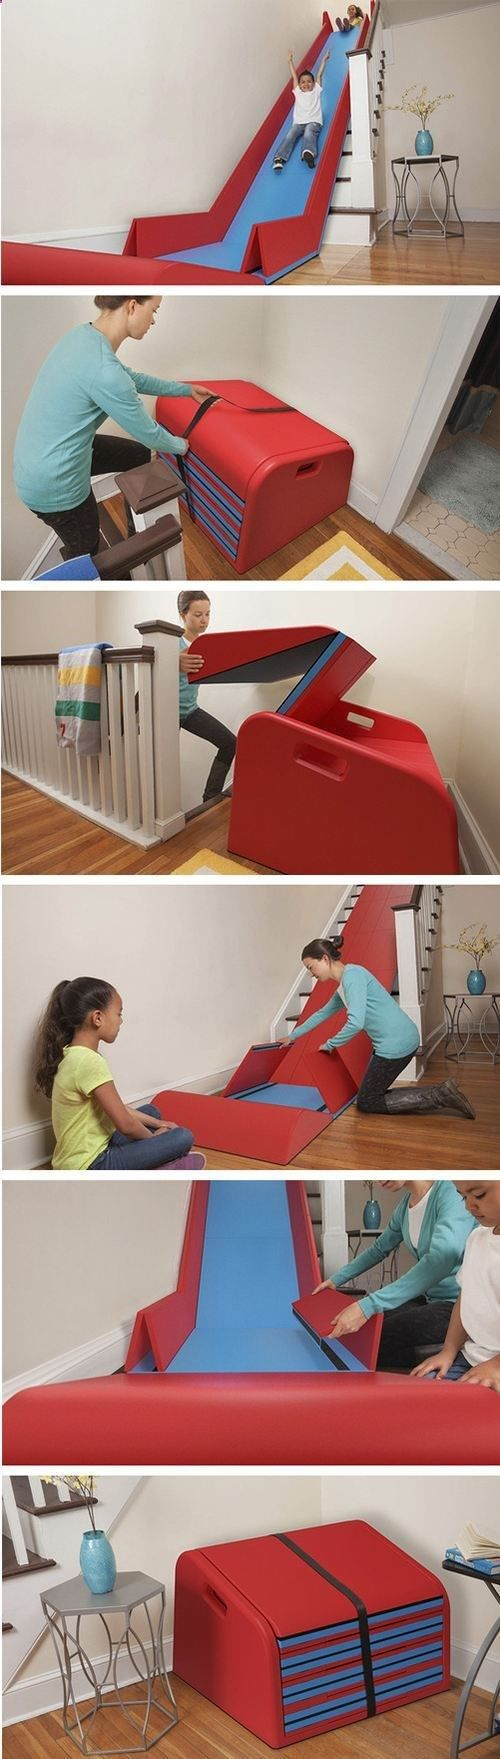 I want this. And no I don't have kids. #sorrynotsorry.